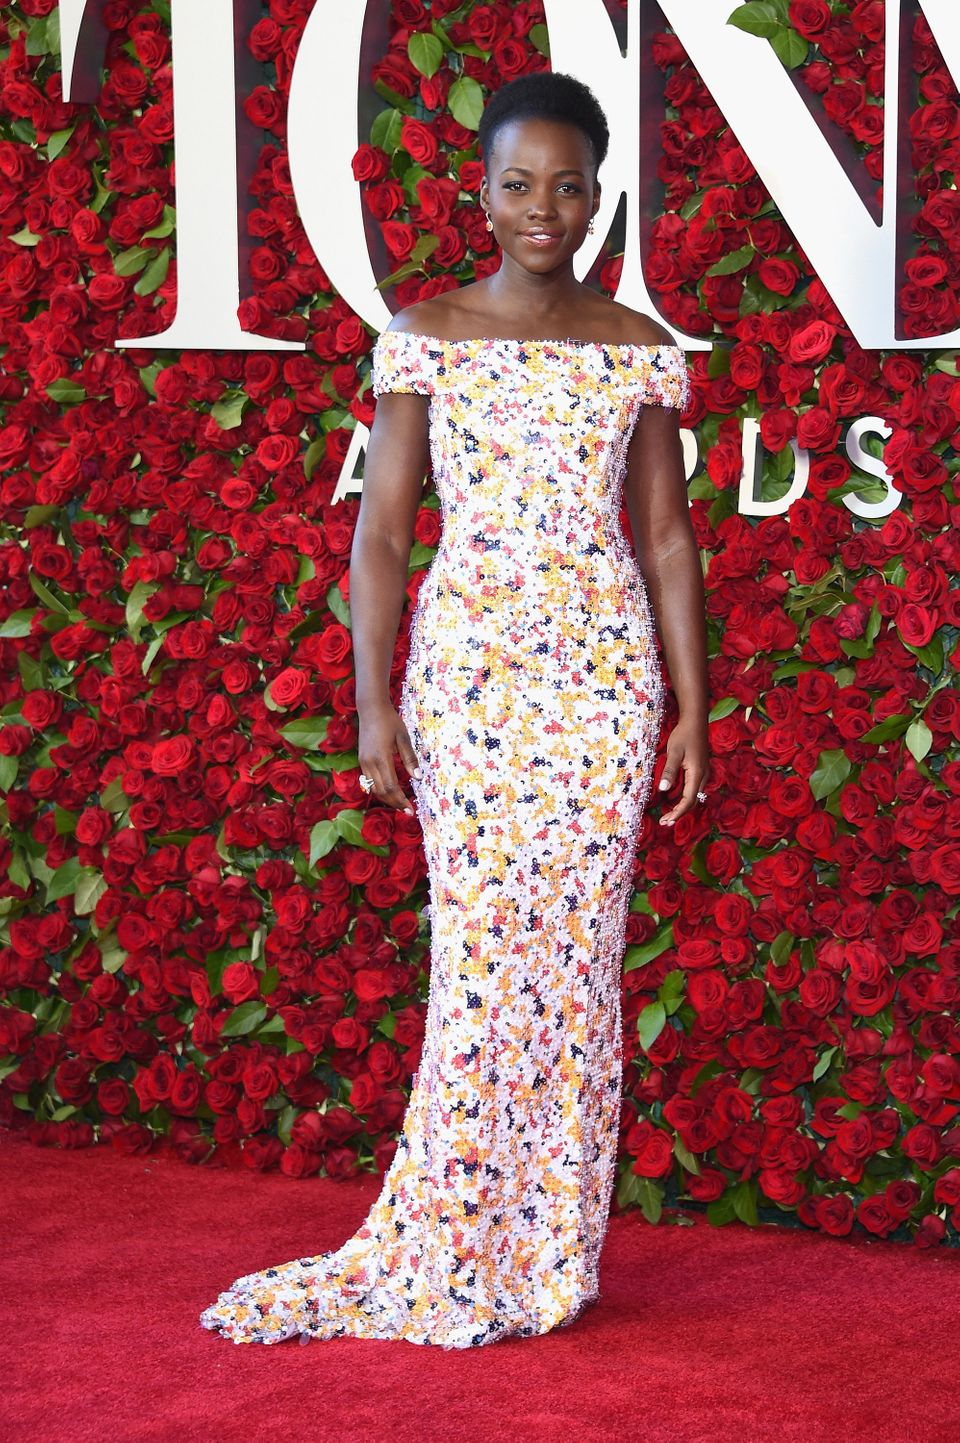 NEW YORK, NY - JUNE 12:  Lupita Nyong'o attends the 70th Annual Tony Awards at The Beacon Theatre on June 12, 2016 in New Yor